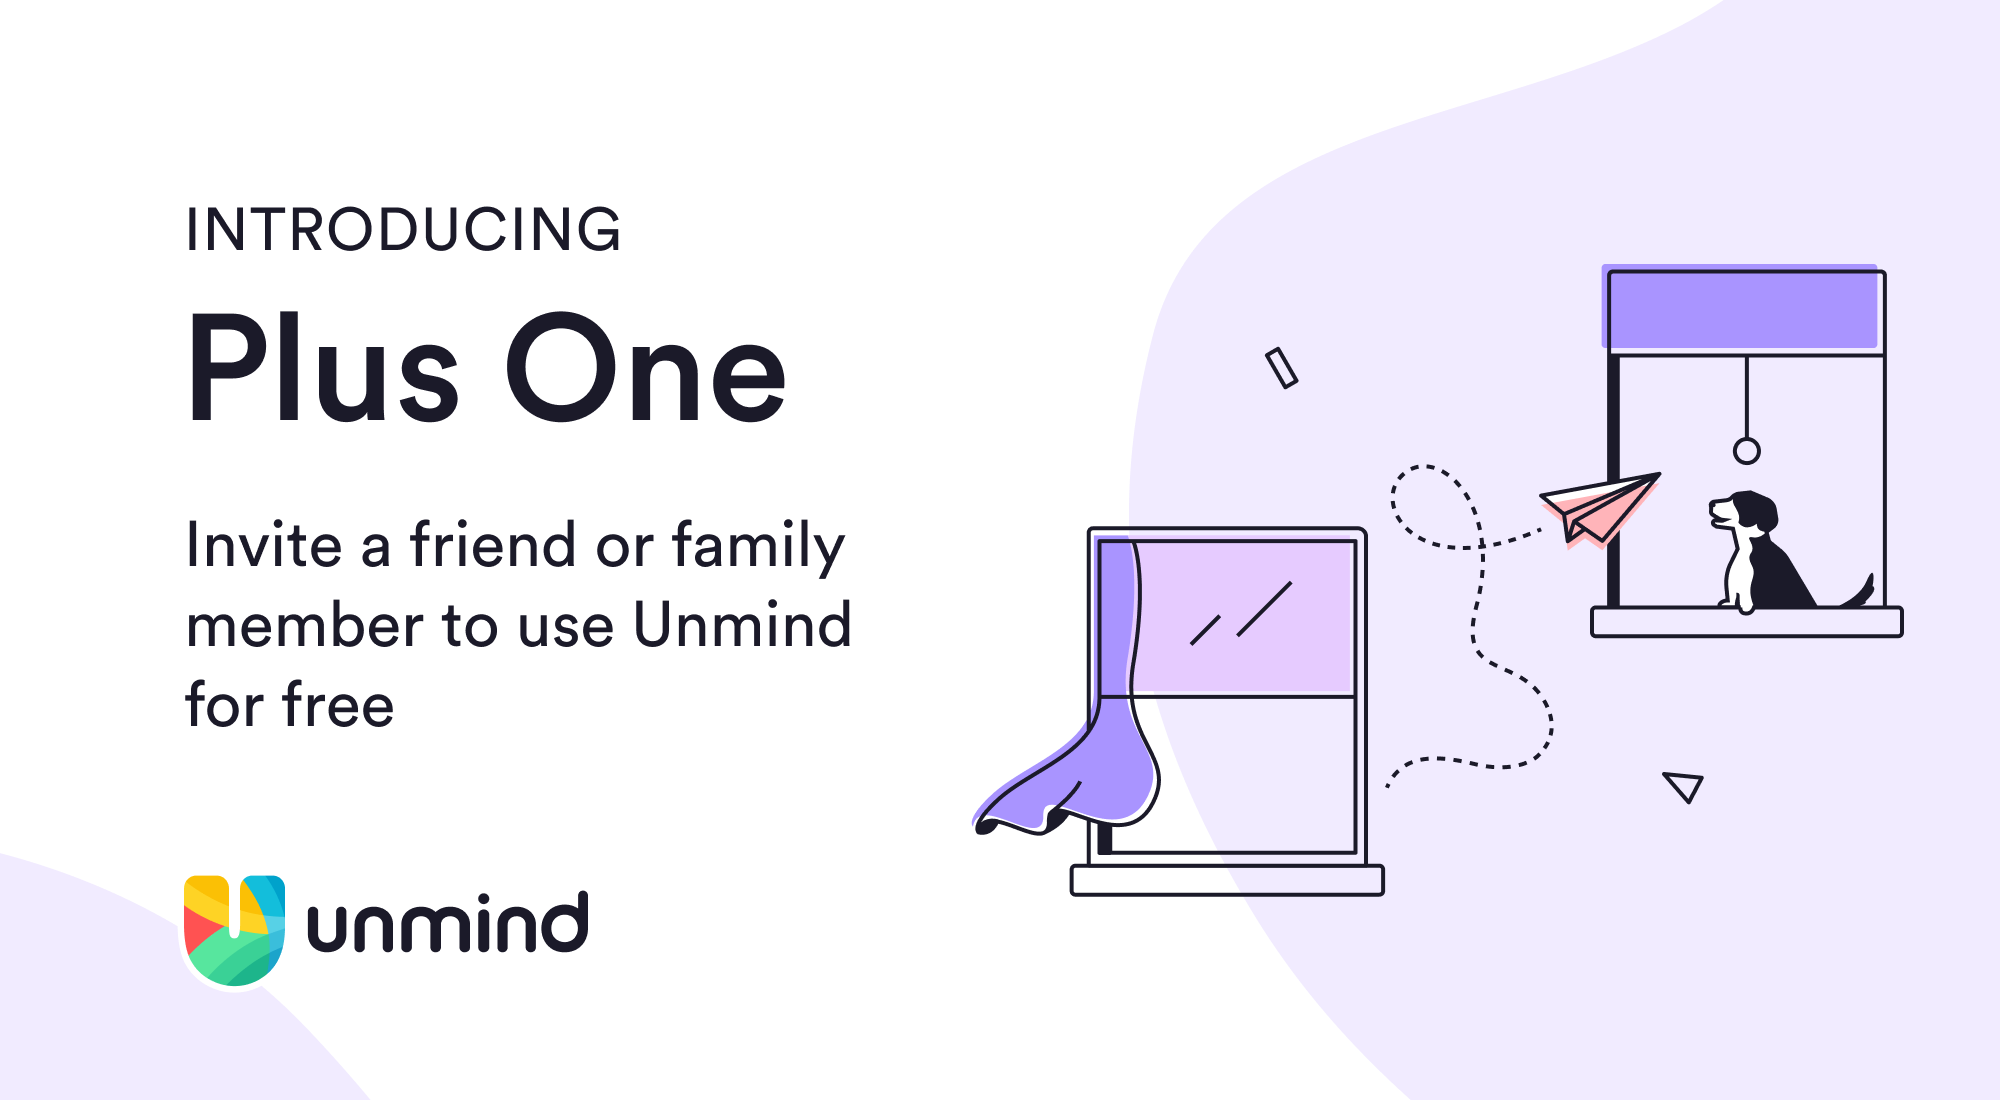 An illustration introducing the new Unmind Plus One feature.